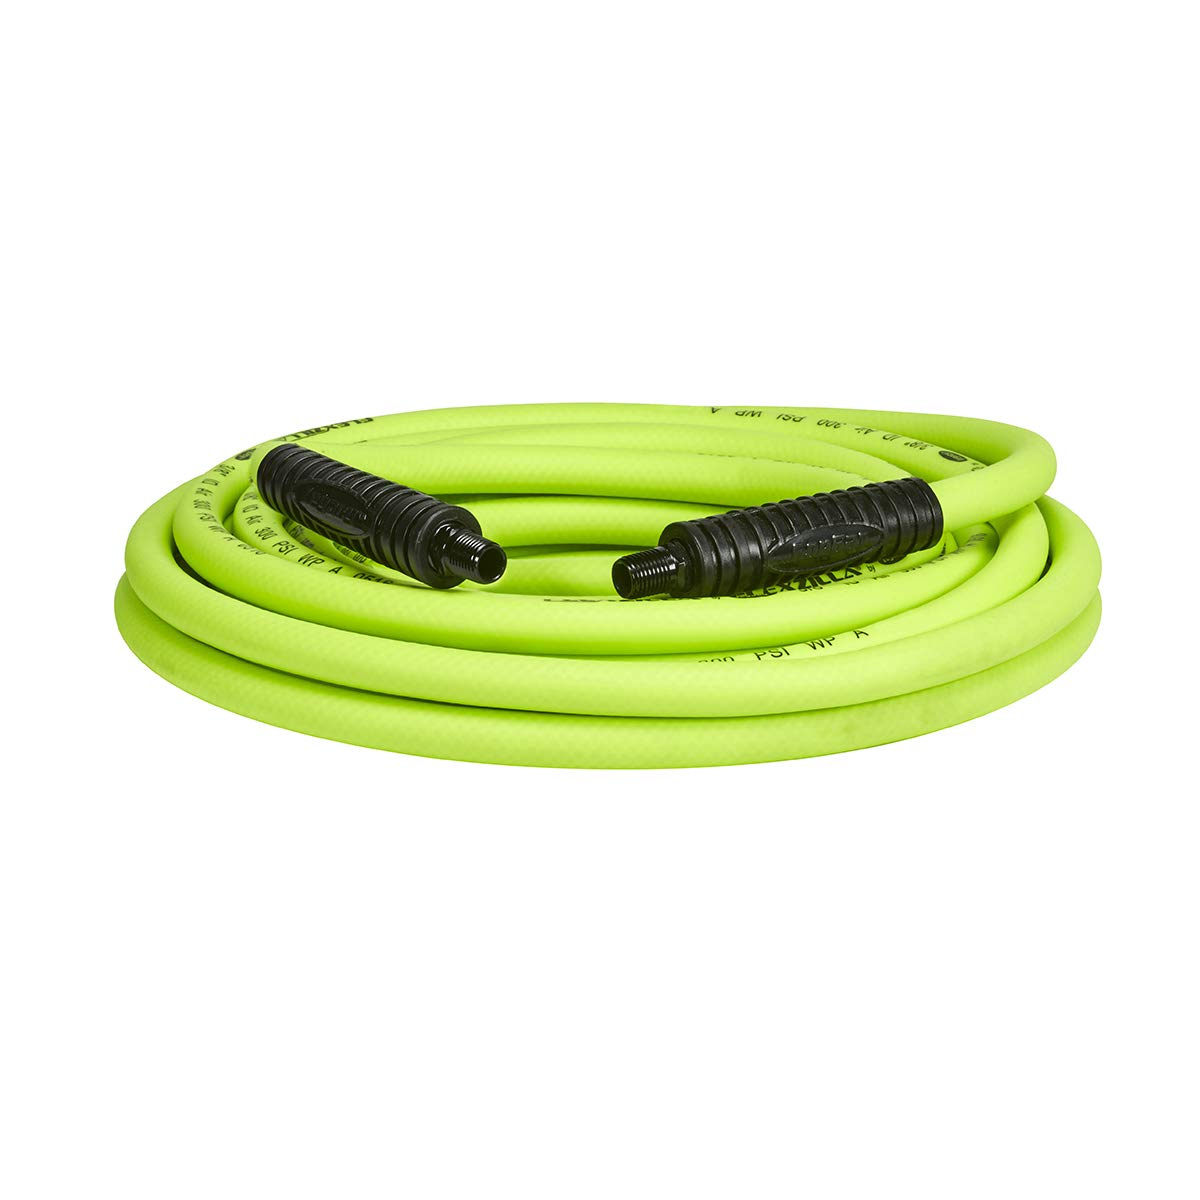 Flexzilla Air Hose, 3/8 in. x 25 ft, 1/4 in. MNPT Fittings, Heavy Duty, Lightweight, Hybrid, ZillaGreen - HFZ3825YW2